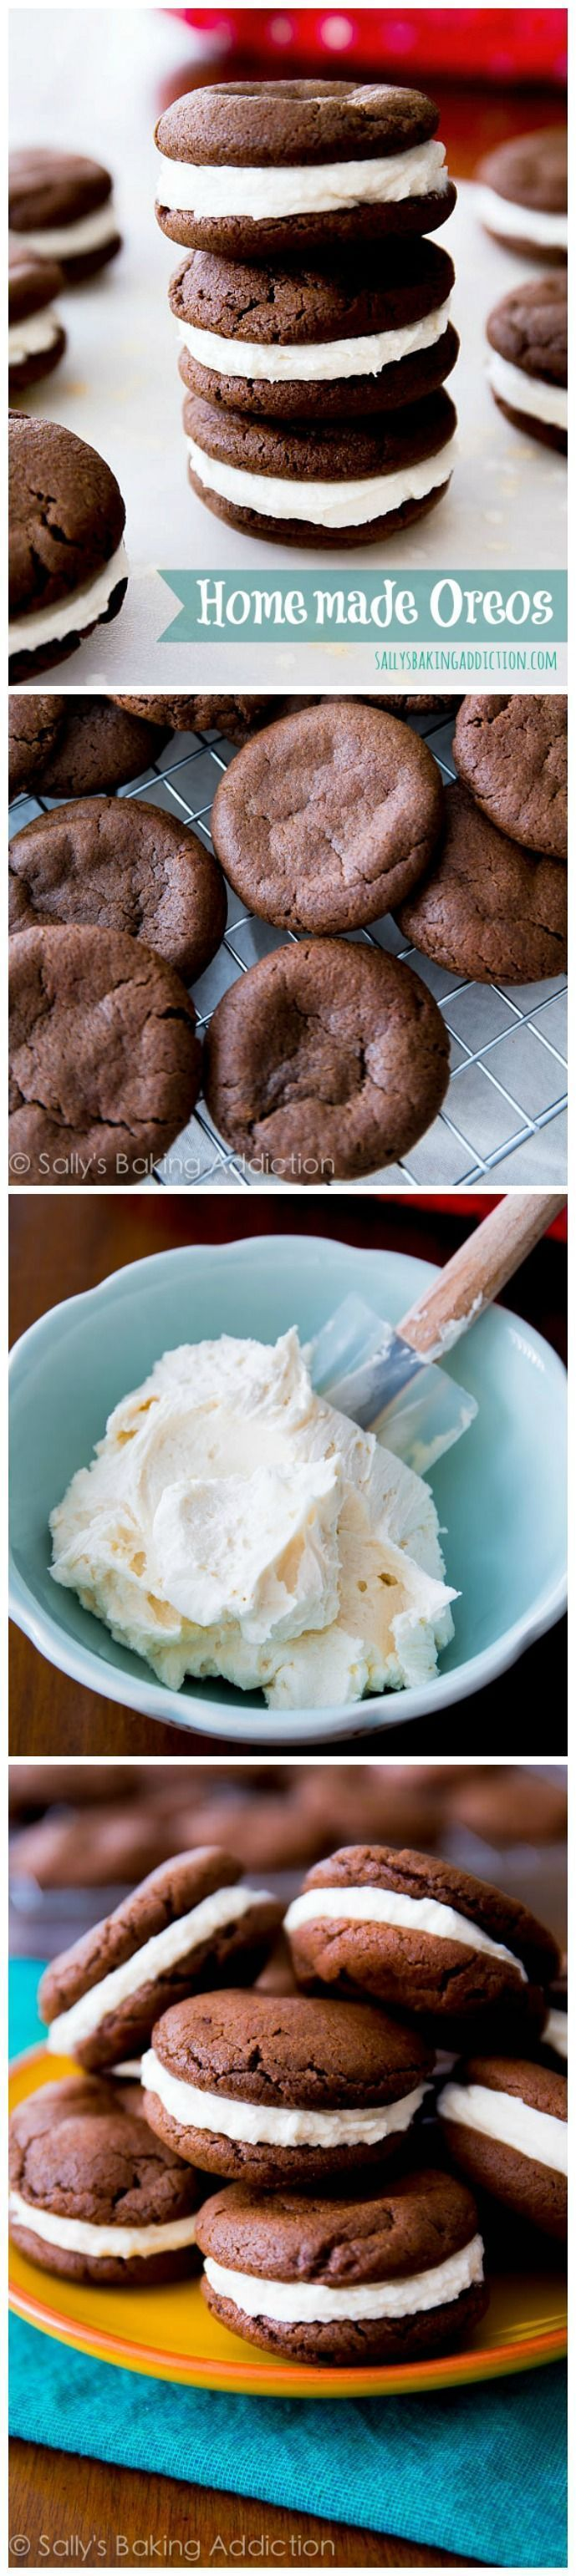 Homemade Oreos! So many readers have tried them, saying they're better than the originals. Crunchy, creamy, sweet!